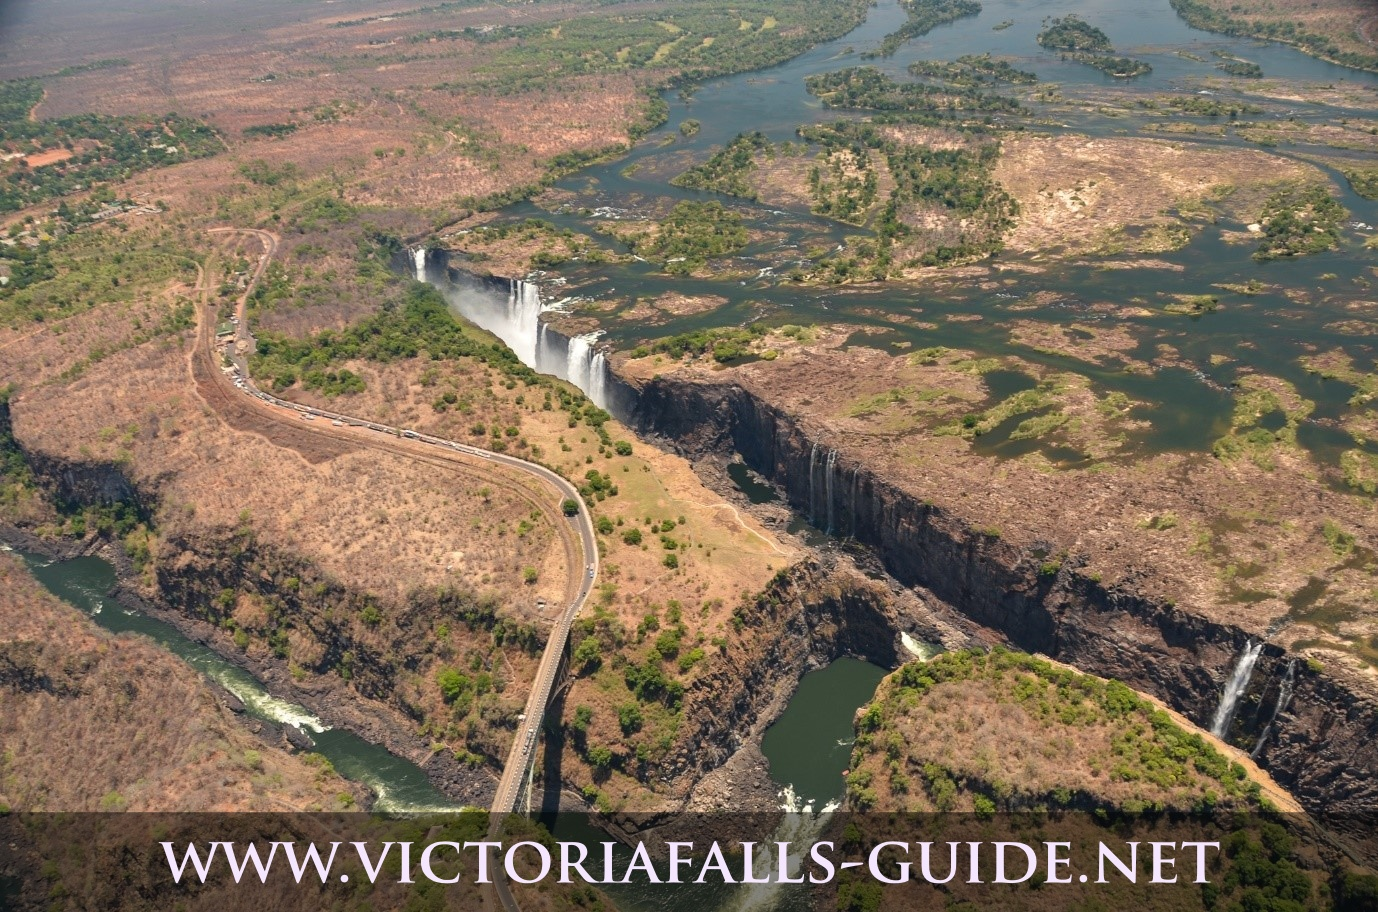 The Victoria Falls during the dry season